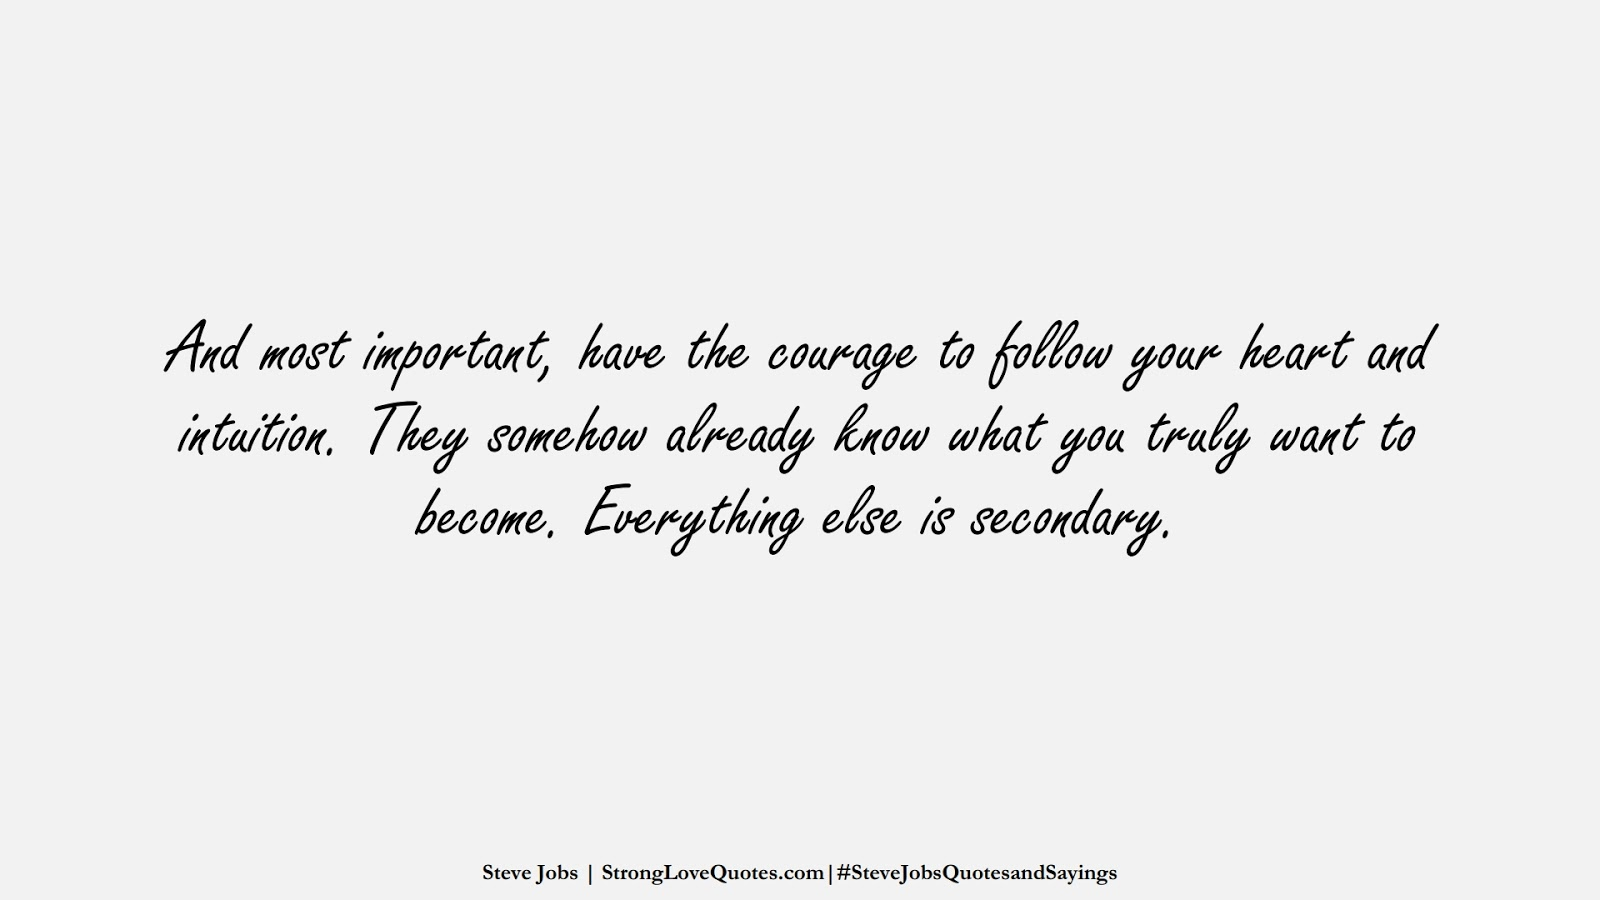 And most important, have the courage to follow your heart and intuition. They somehow already know what you truly want to become. Everything else is secondary. (Steve Jobs);  #SteveJobsQuotesandSayings